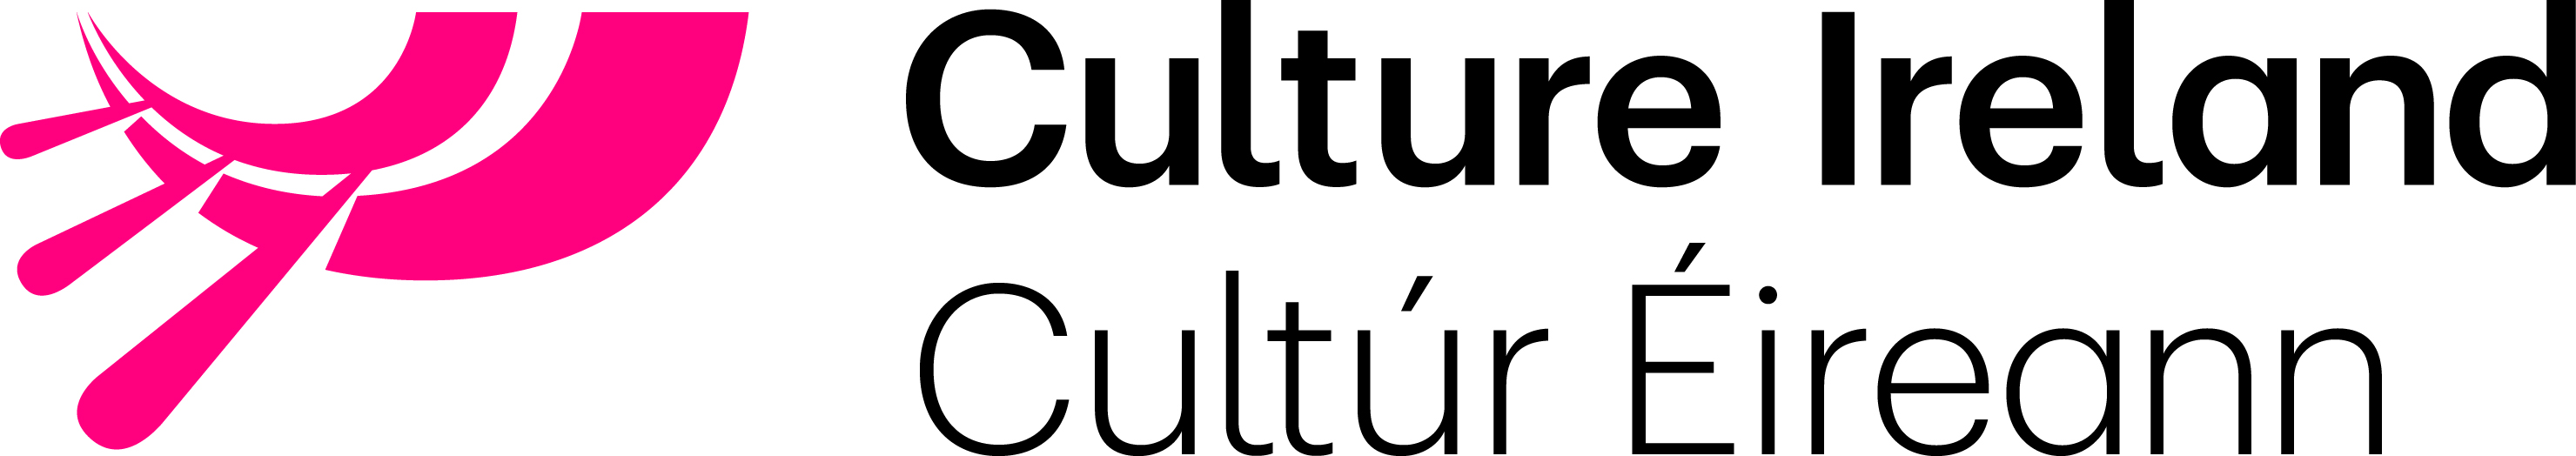 http://www.cultureireland.ie/downloads-public/Colour_Logo_2.jpg